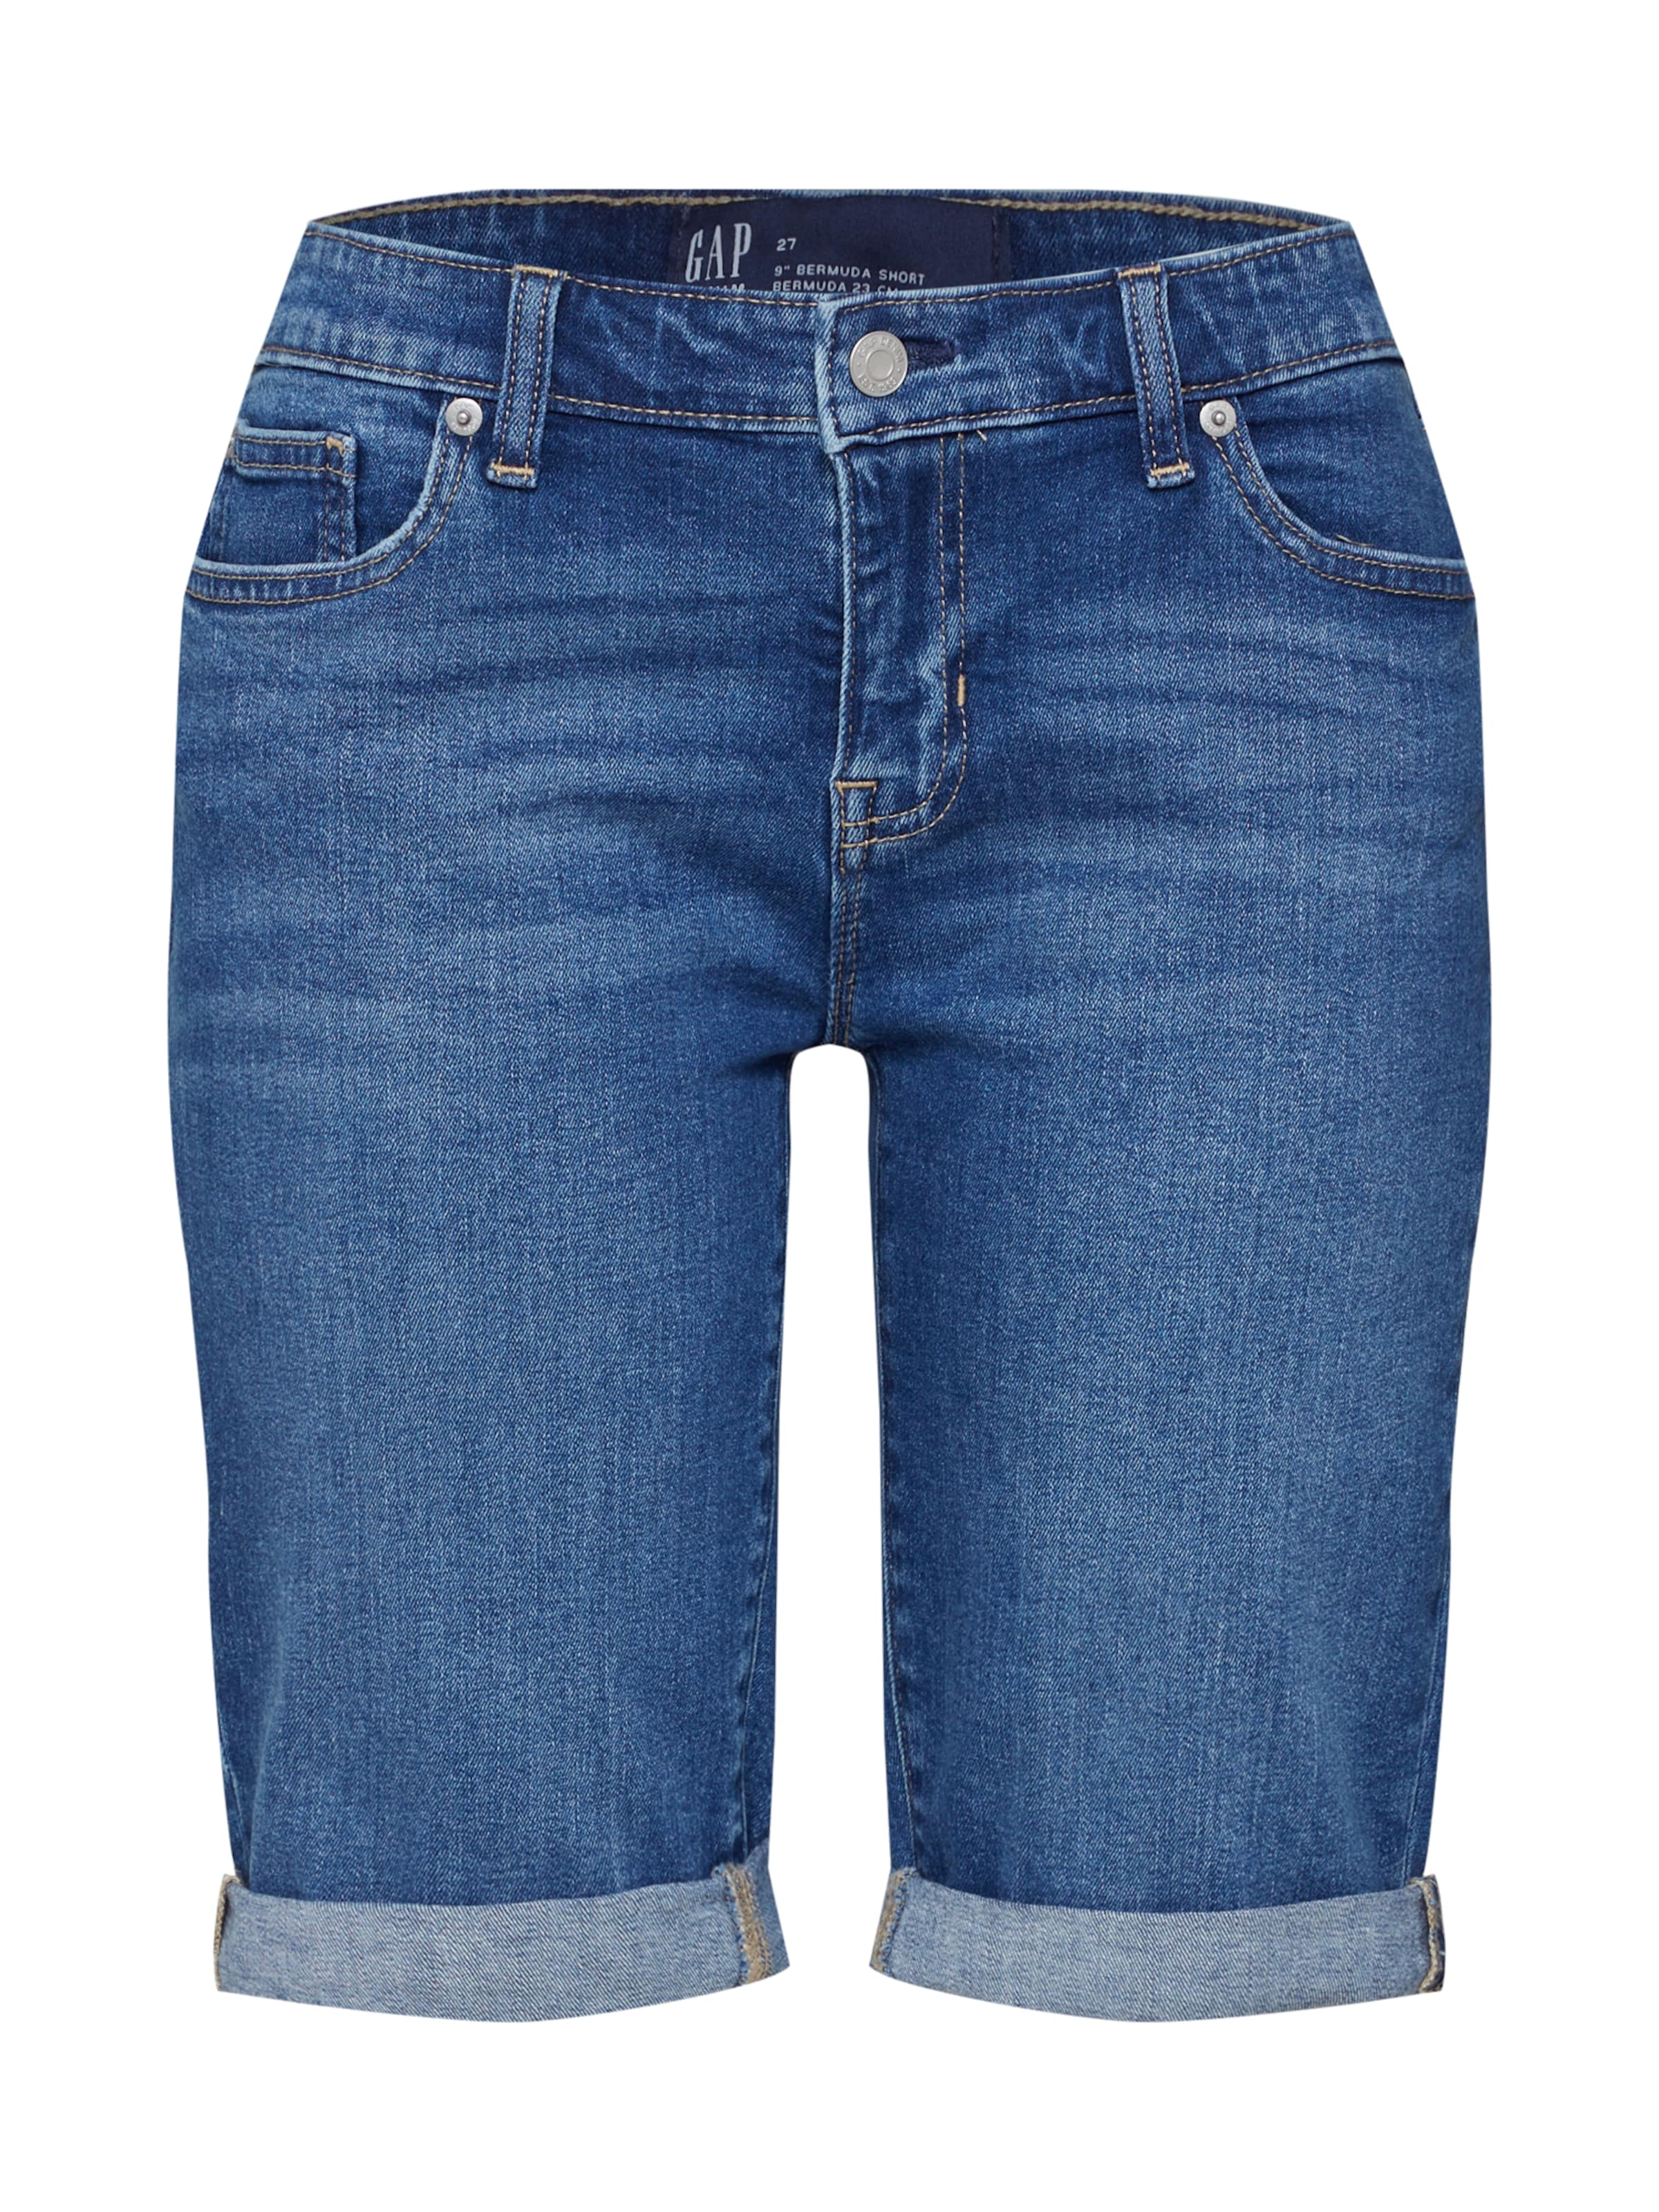 Milao Jeans bermuda In Blue Gap 'v Denim Dr' Med Nn8Ovwm0